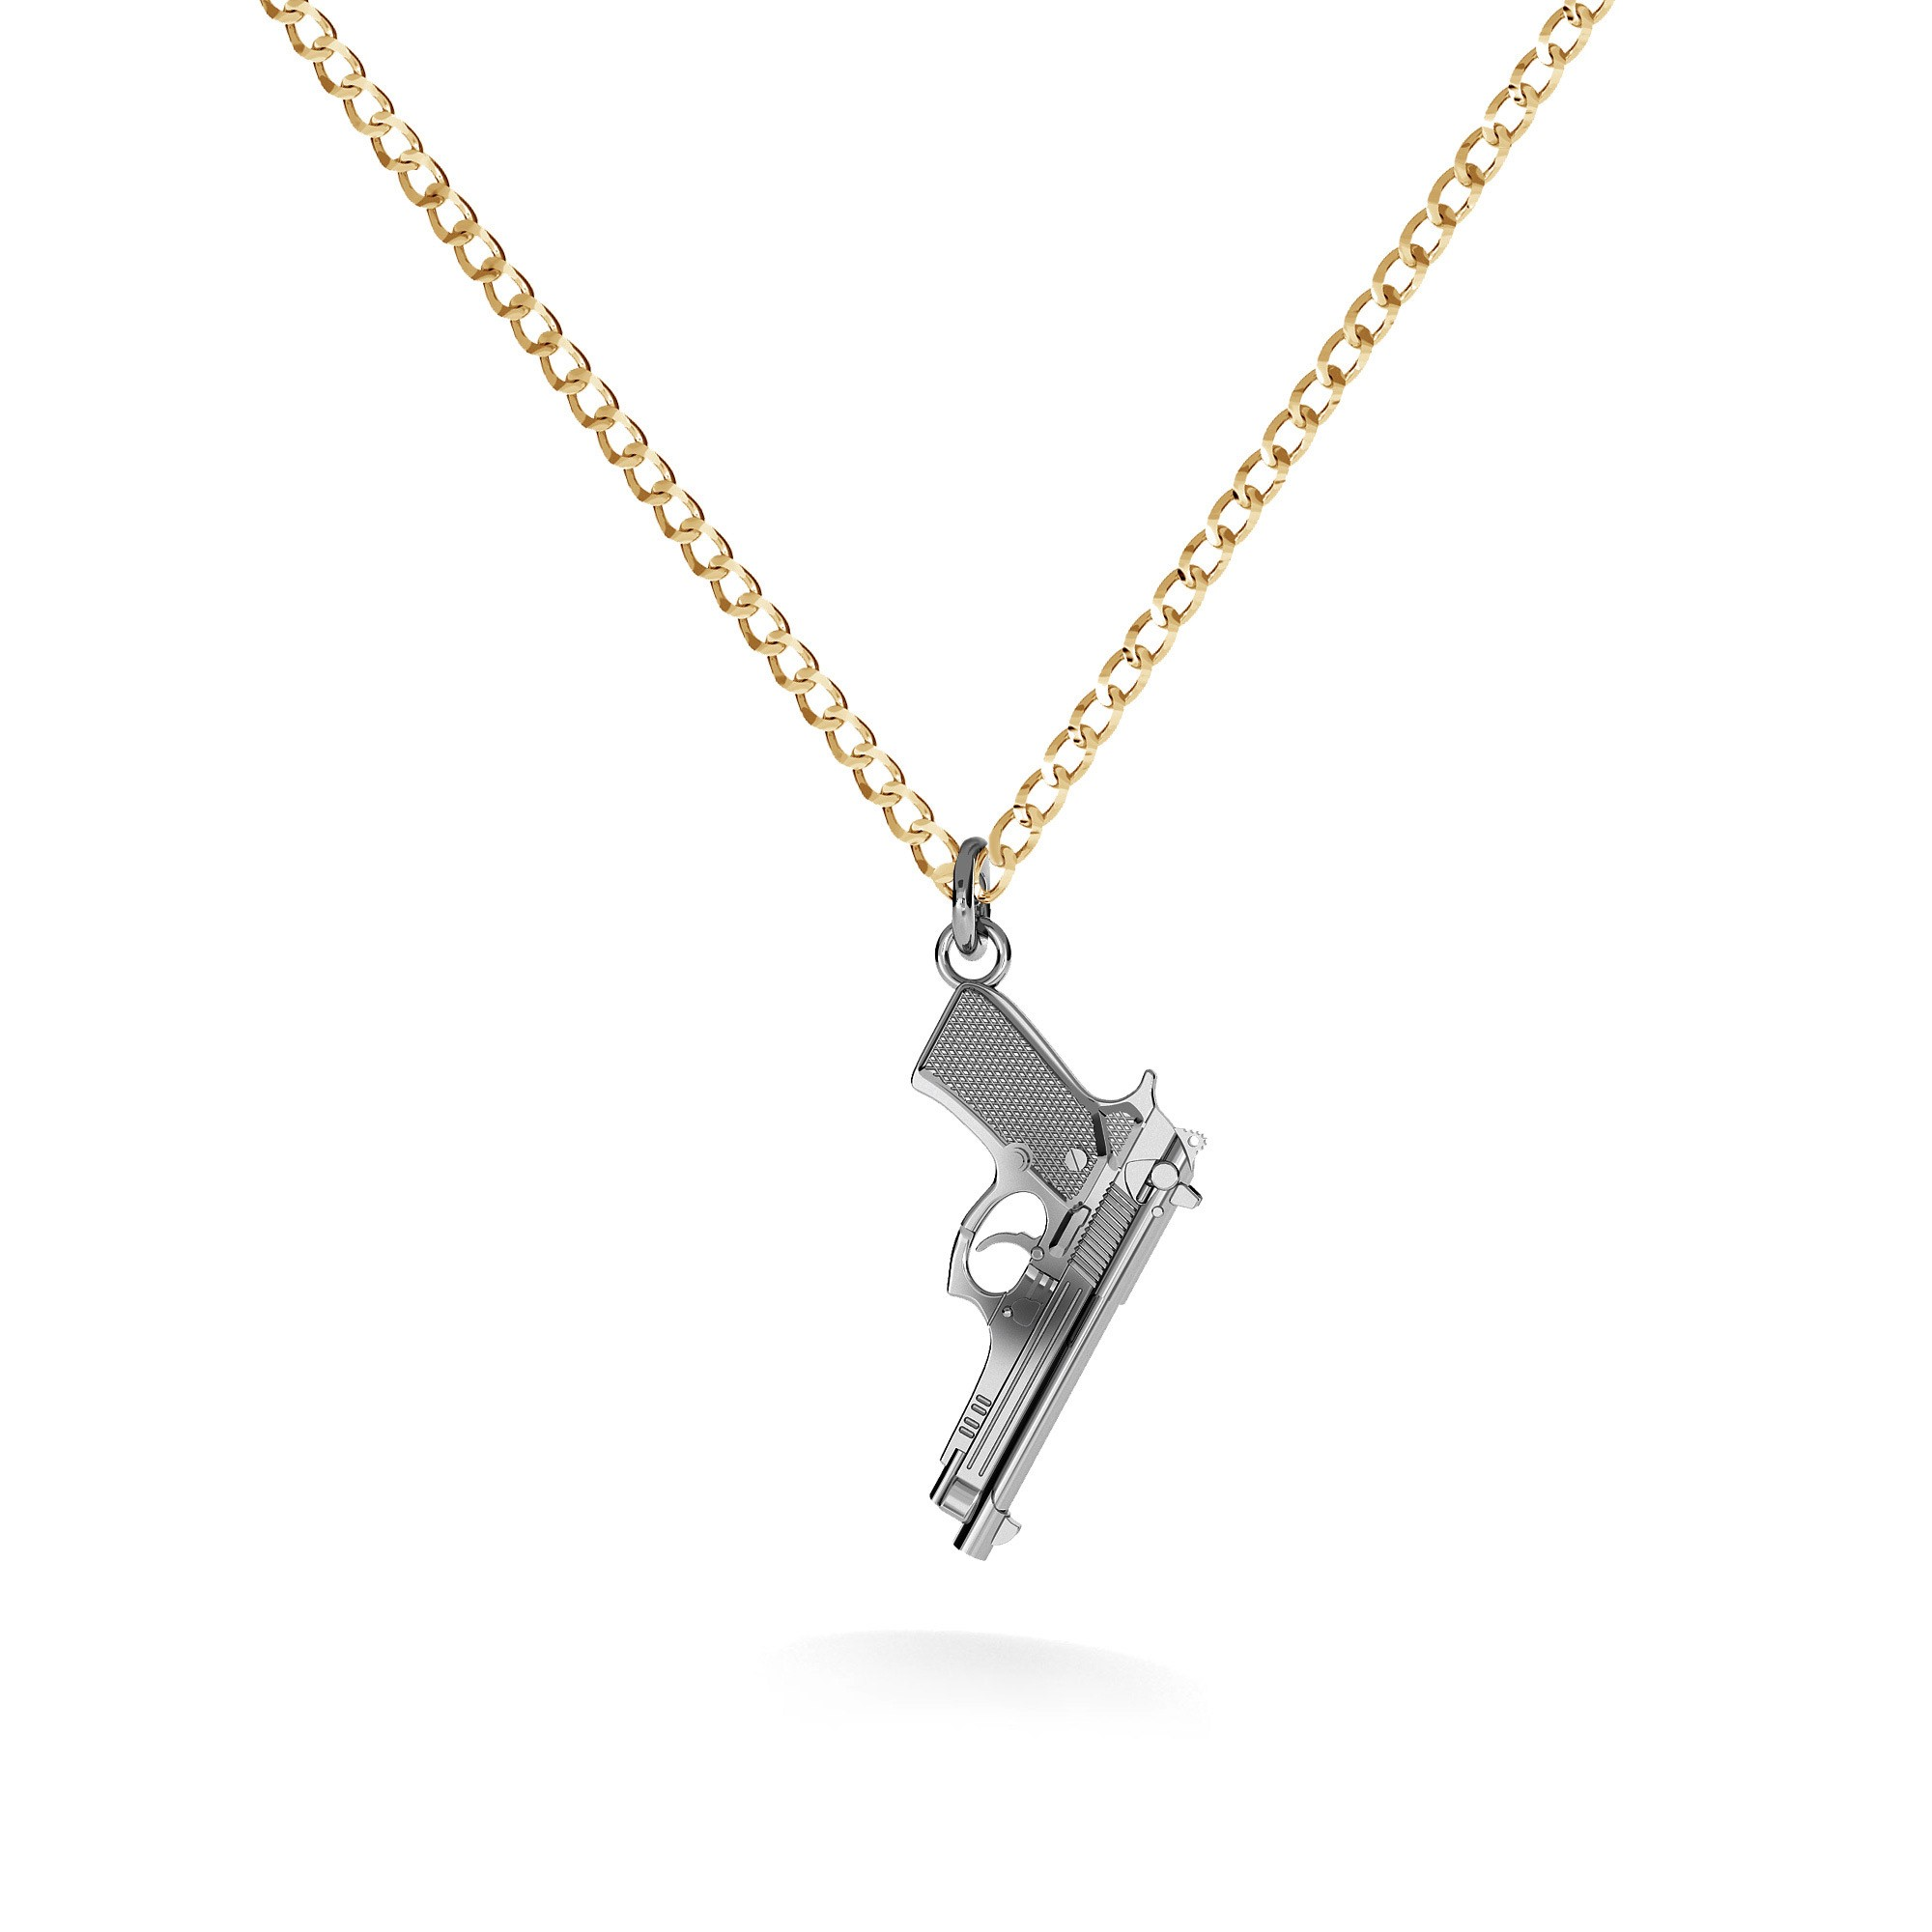 MACHINE GUN NECKLACE 925